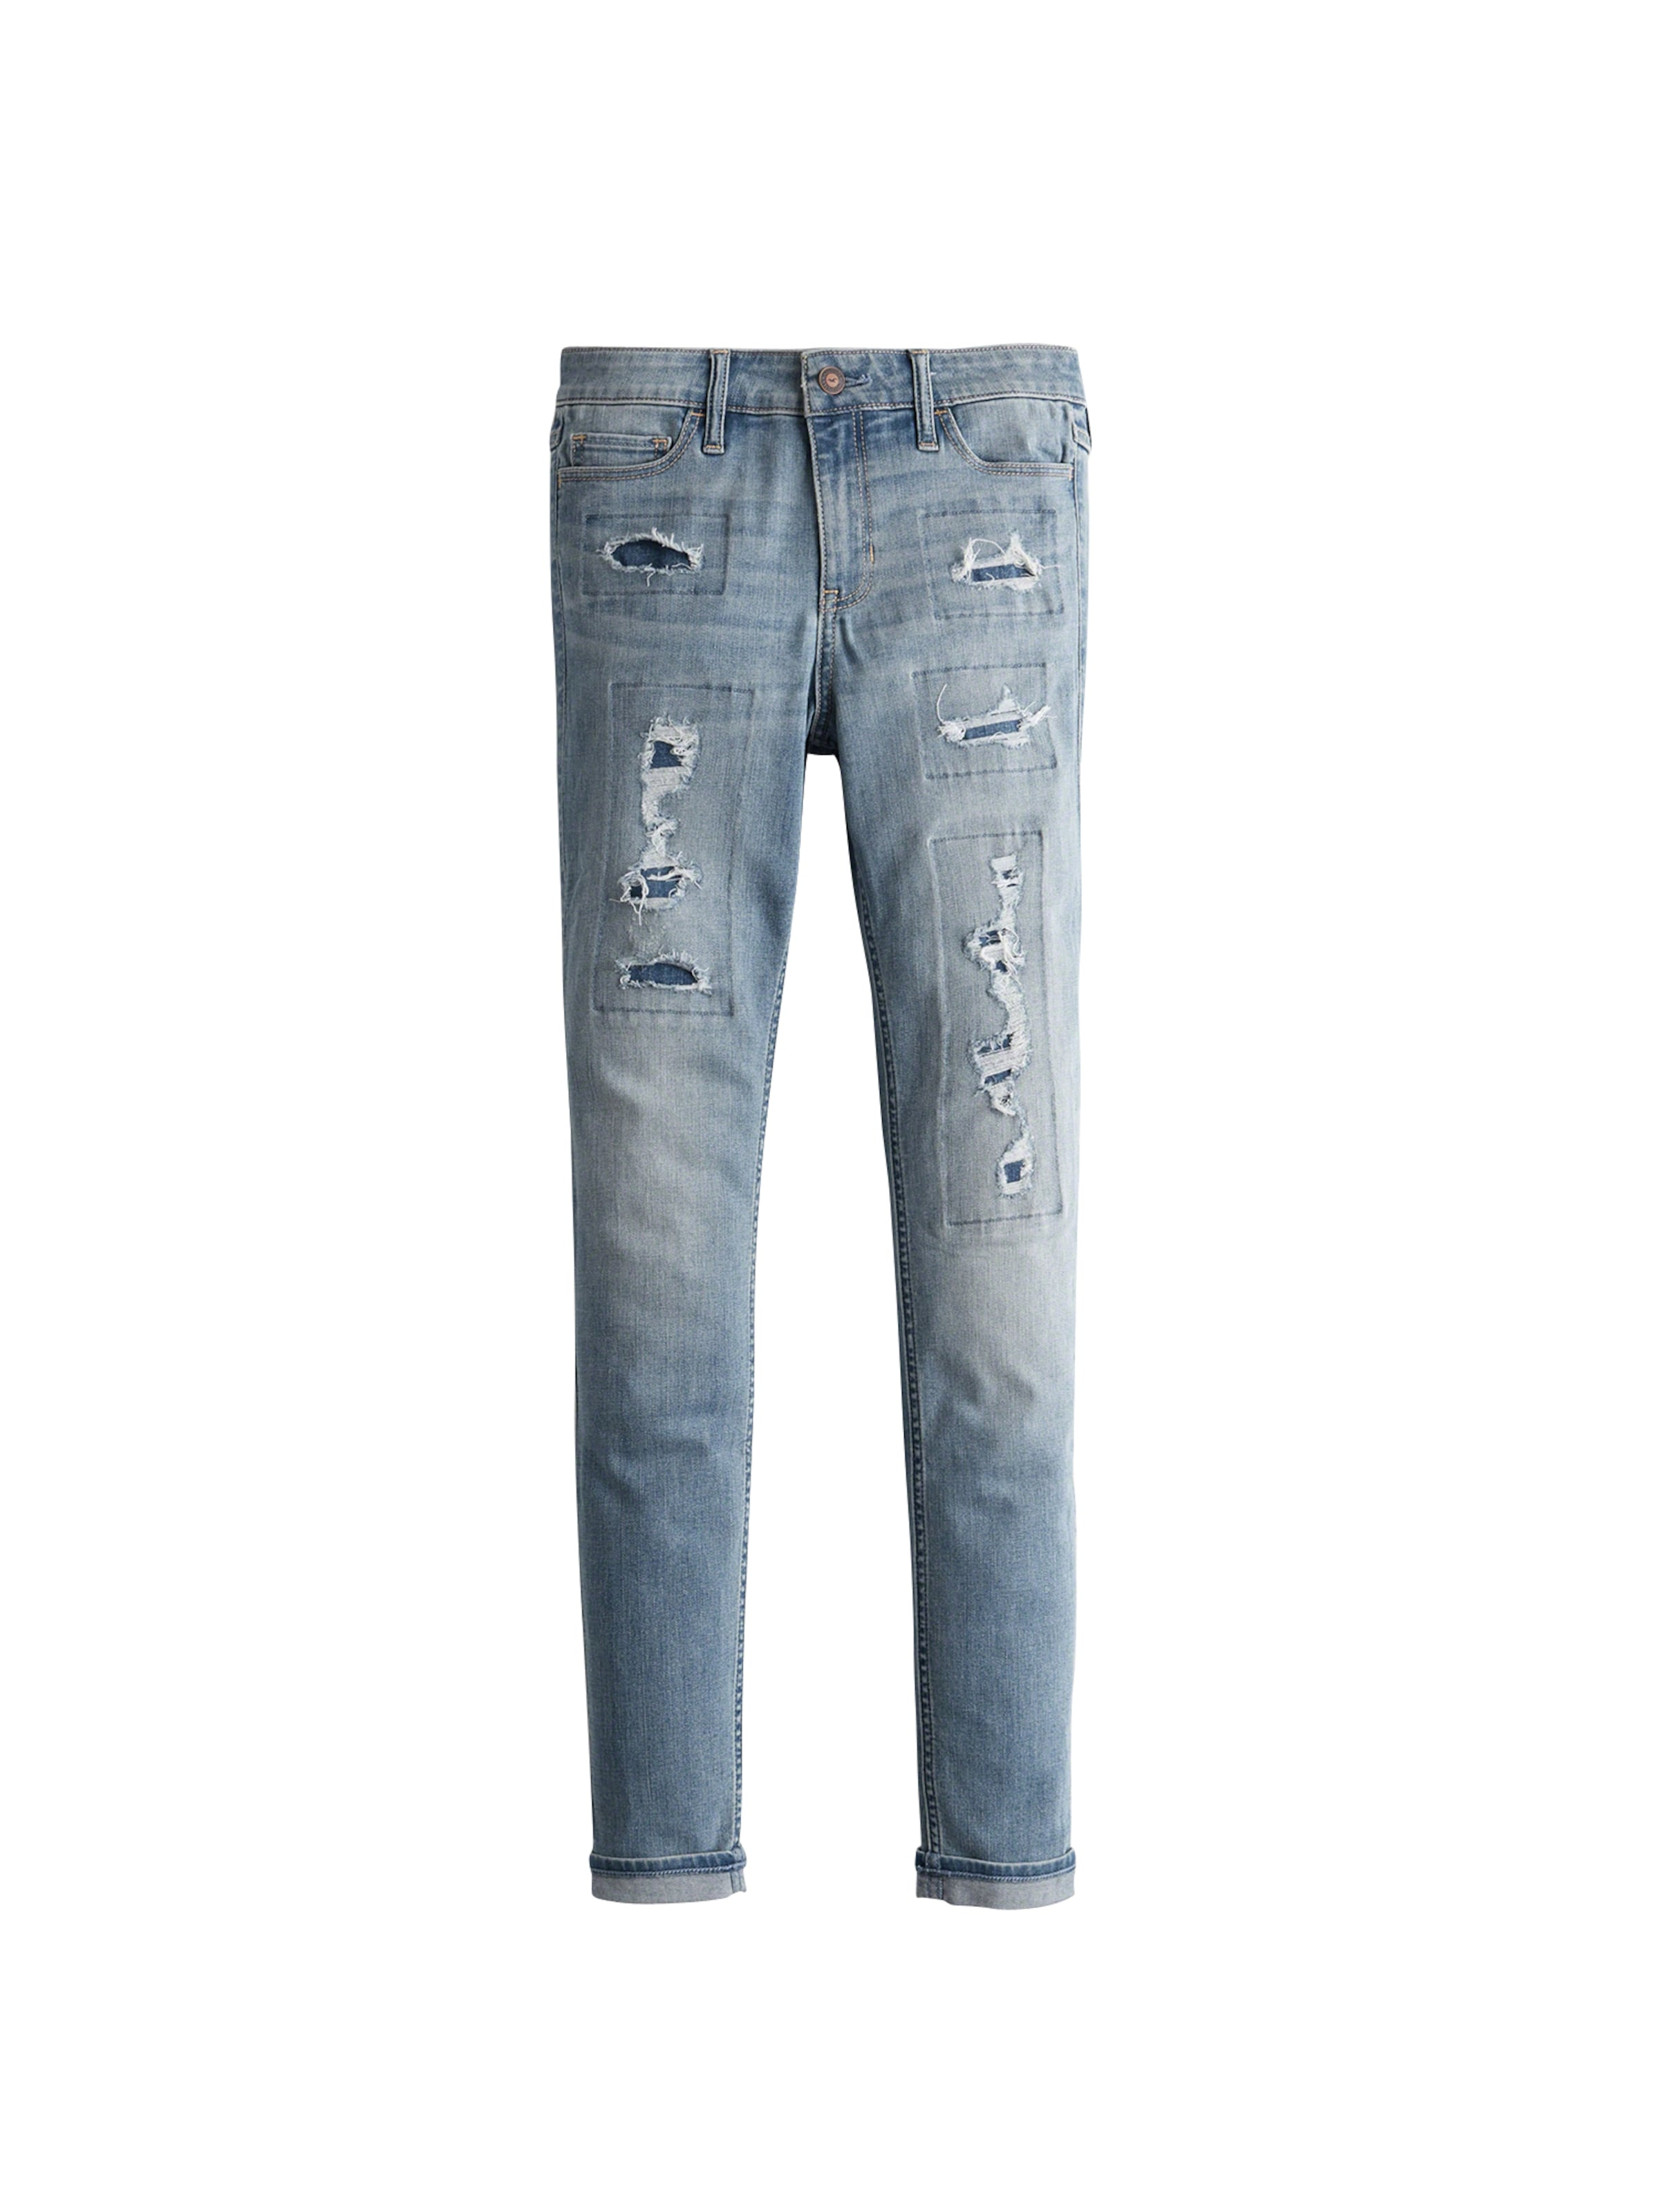 Hollister Denim Jeans Ptchamp; Rpr' Blue In 'sb19 med v8nw0mN